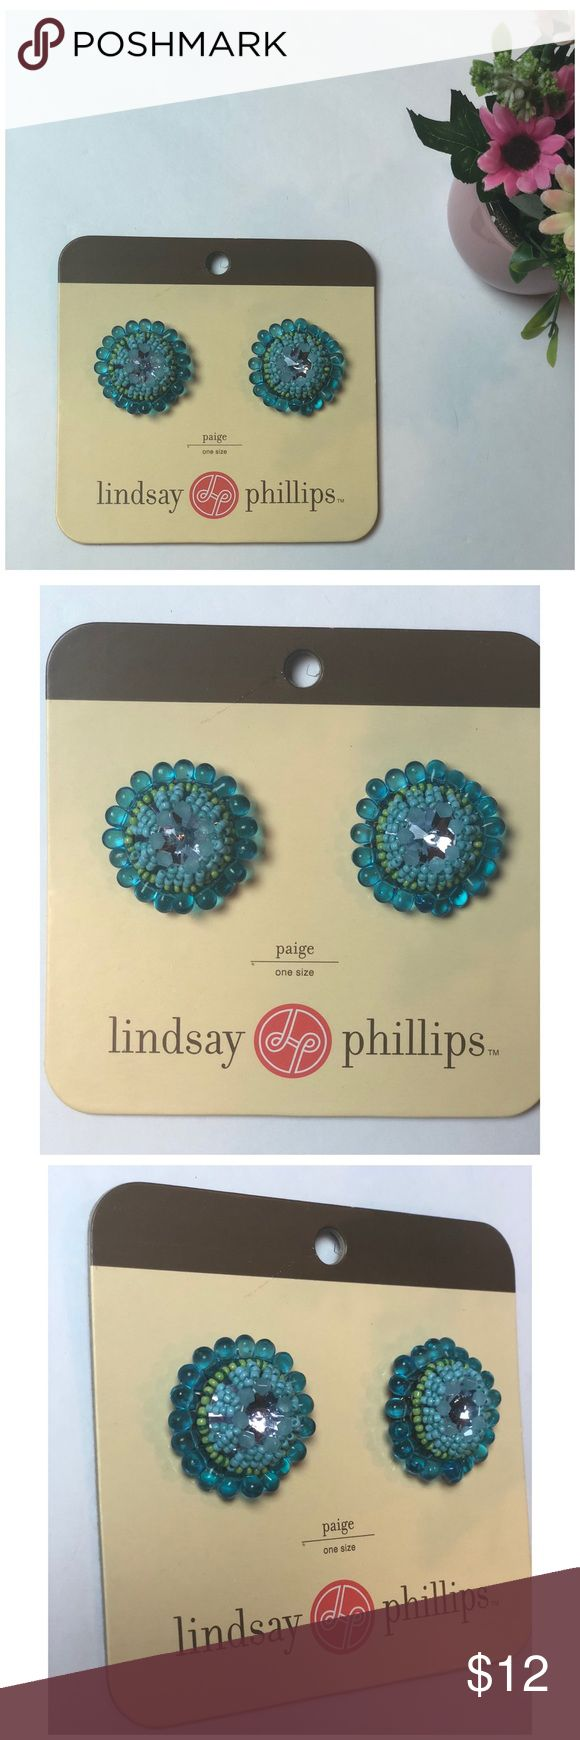 Lindsay Phillips Snap Buttons Turquoise Flower Lindsay Phillips Snap buttons. Beautiful Turquoise color. Matches any Lindsay Phillip snap shoes including flats and flip flops. Never used. Brand new packaging. Bundle with other snap kits in my closet to save!!!  Paige Lindsay Phillips Shoes